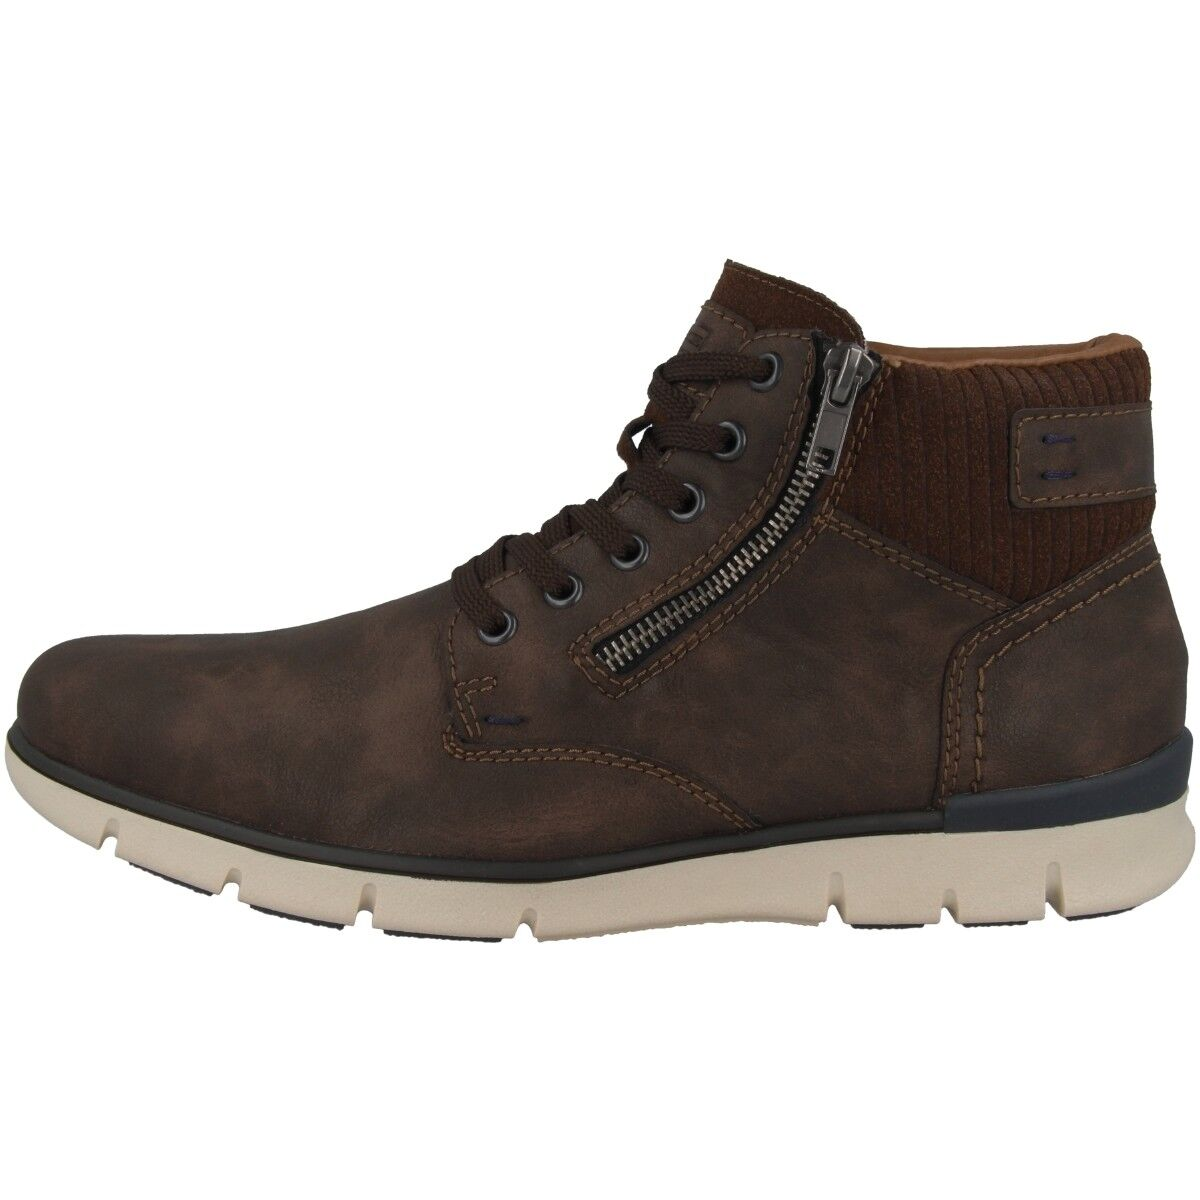 Rieker Tamburo-Virage Schuhe Men Herren Antistress Winter Halbschuhe F8323-26